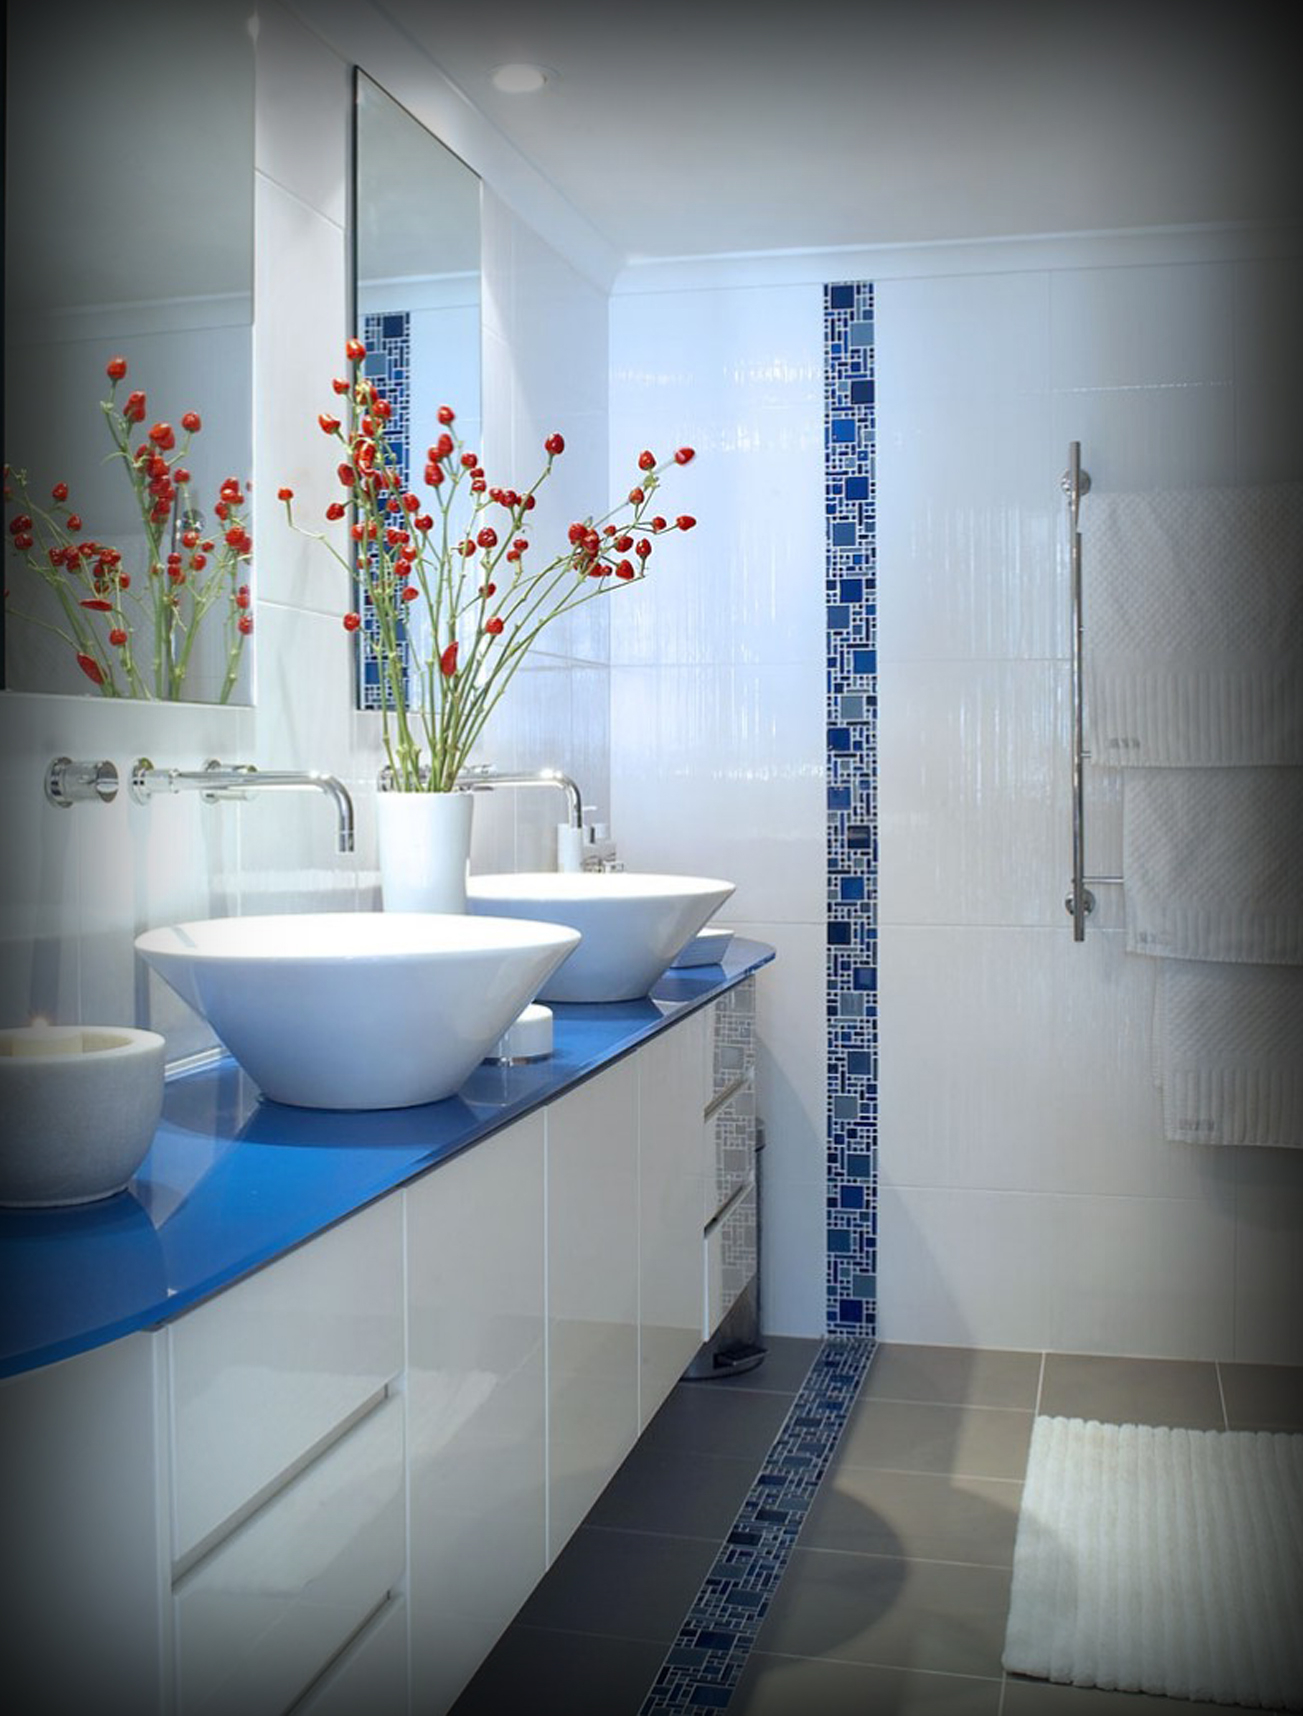 Beautiful Blue Glass Tile Bathroom - Behave2012 regarding Blue Glass Tile Bathroom